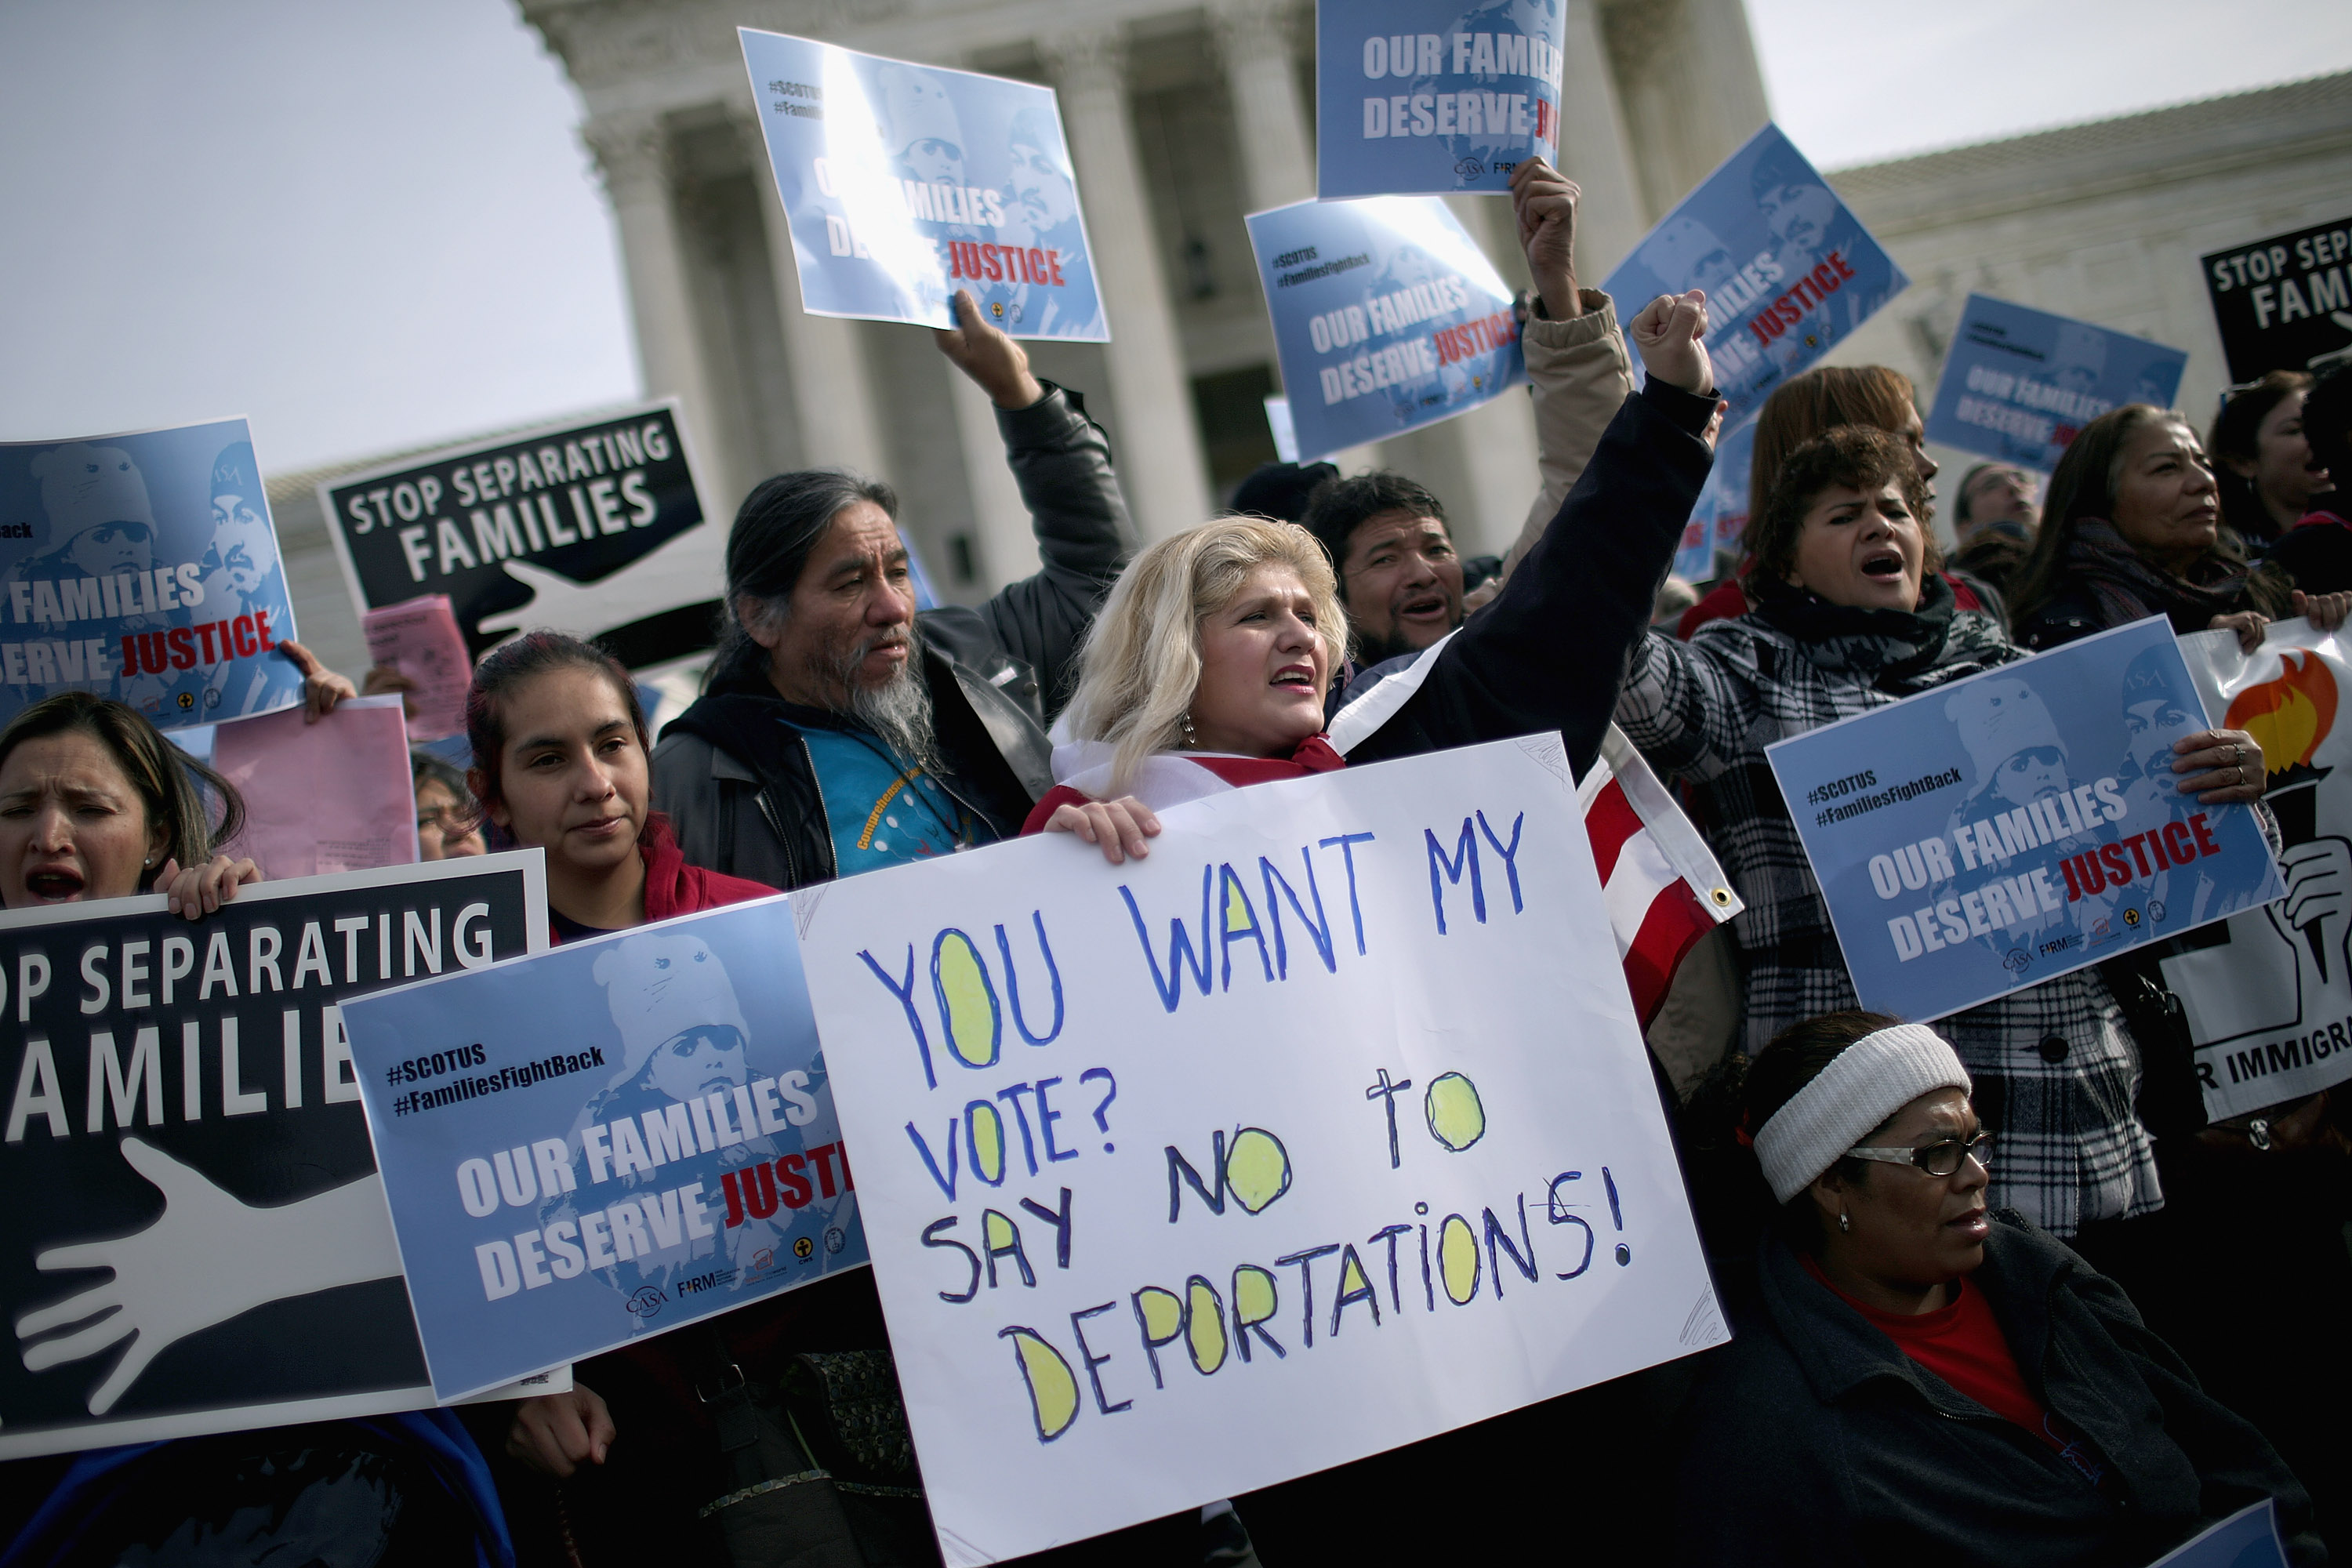 Pro-immigration demonstrators rally outside the Supreme Court on January 15, 2016. (Chip Somodevilla/Getty Images)